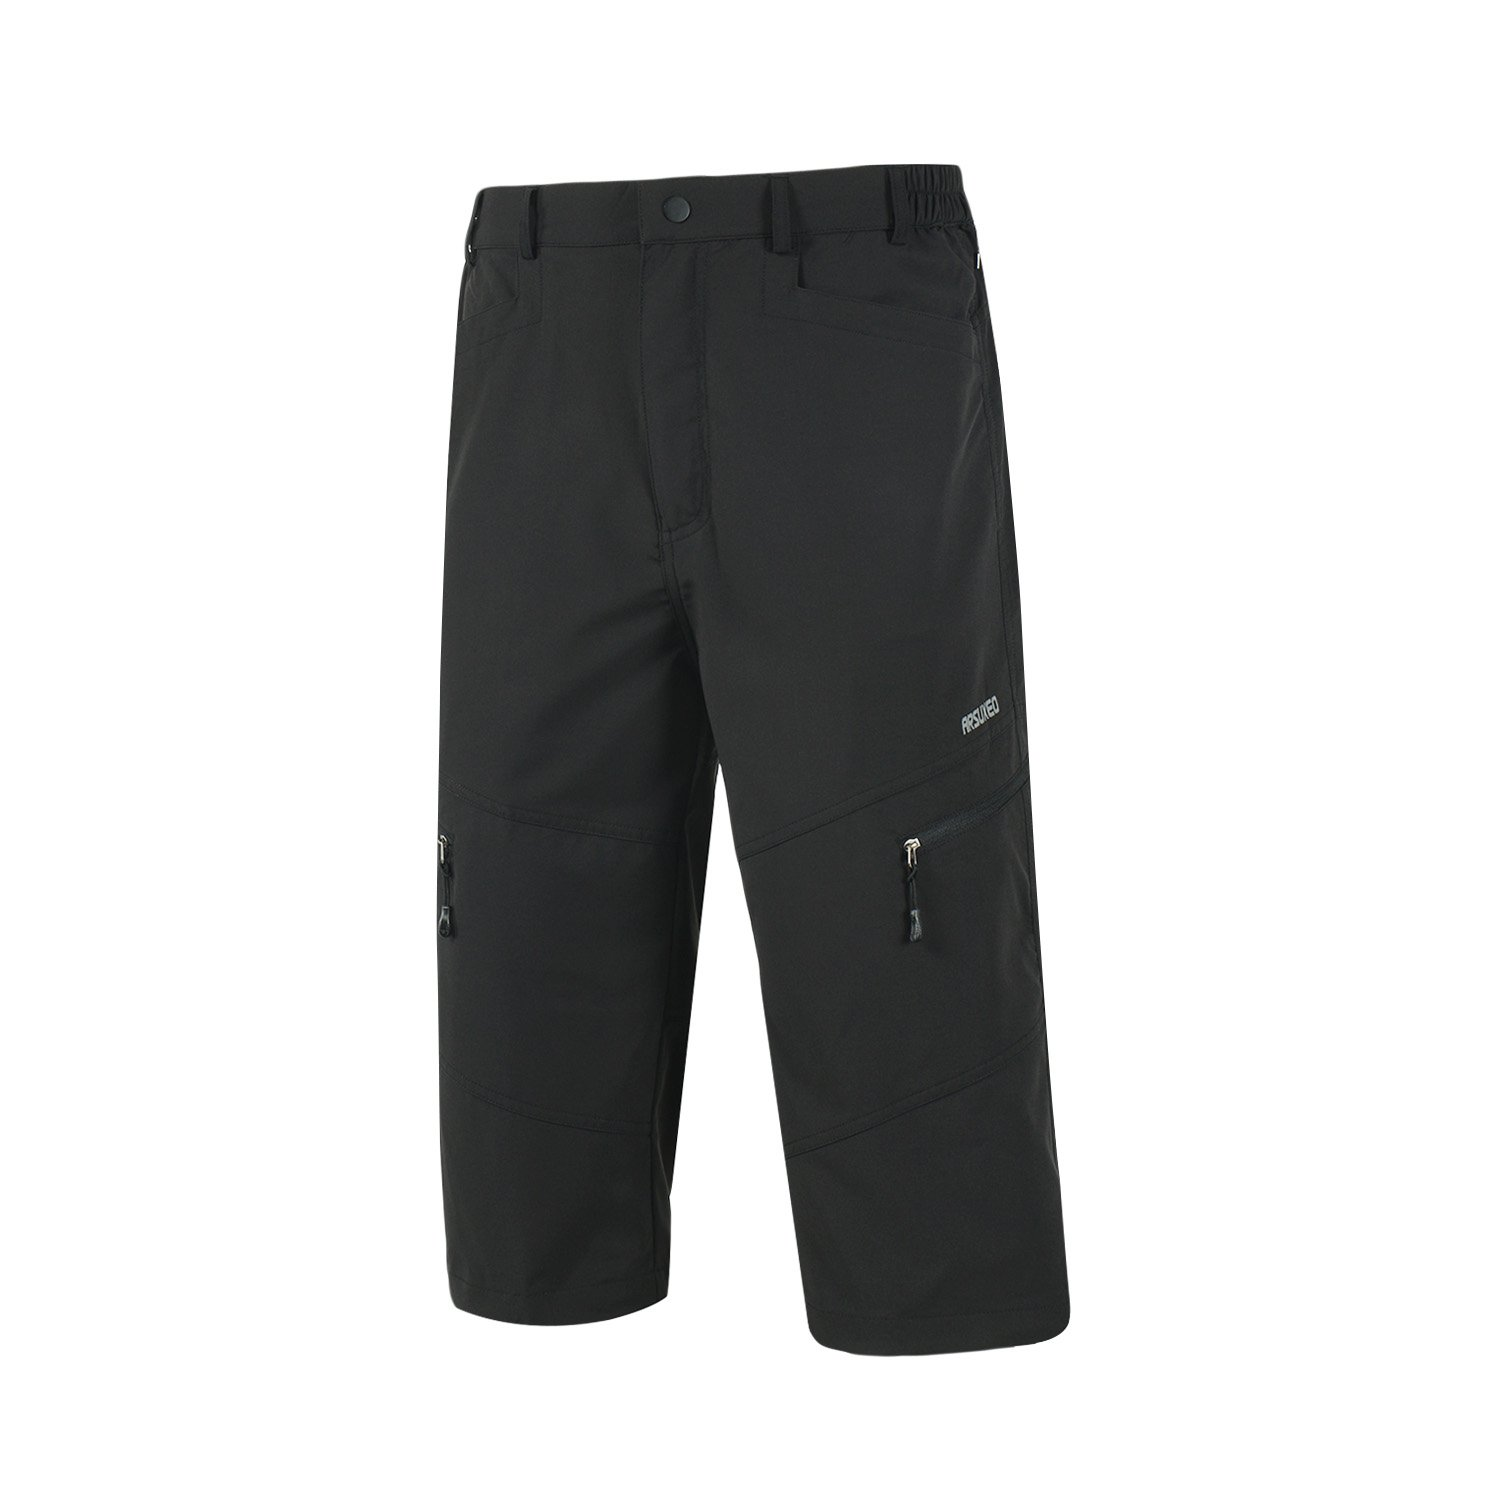 TOFERN Men's Summer Running Pants Capri 3/4 Outdoor Sports Hiking Cycling Cropped Trousers with Belt Quick Dry